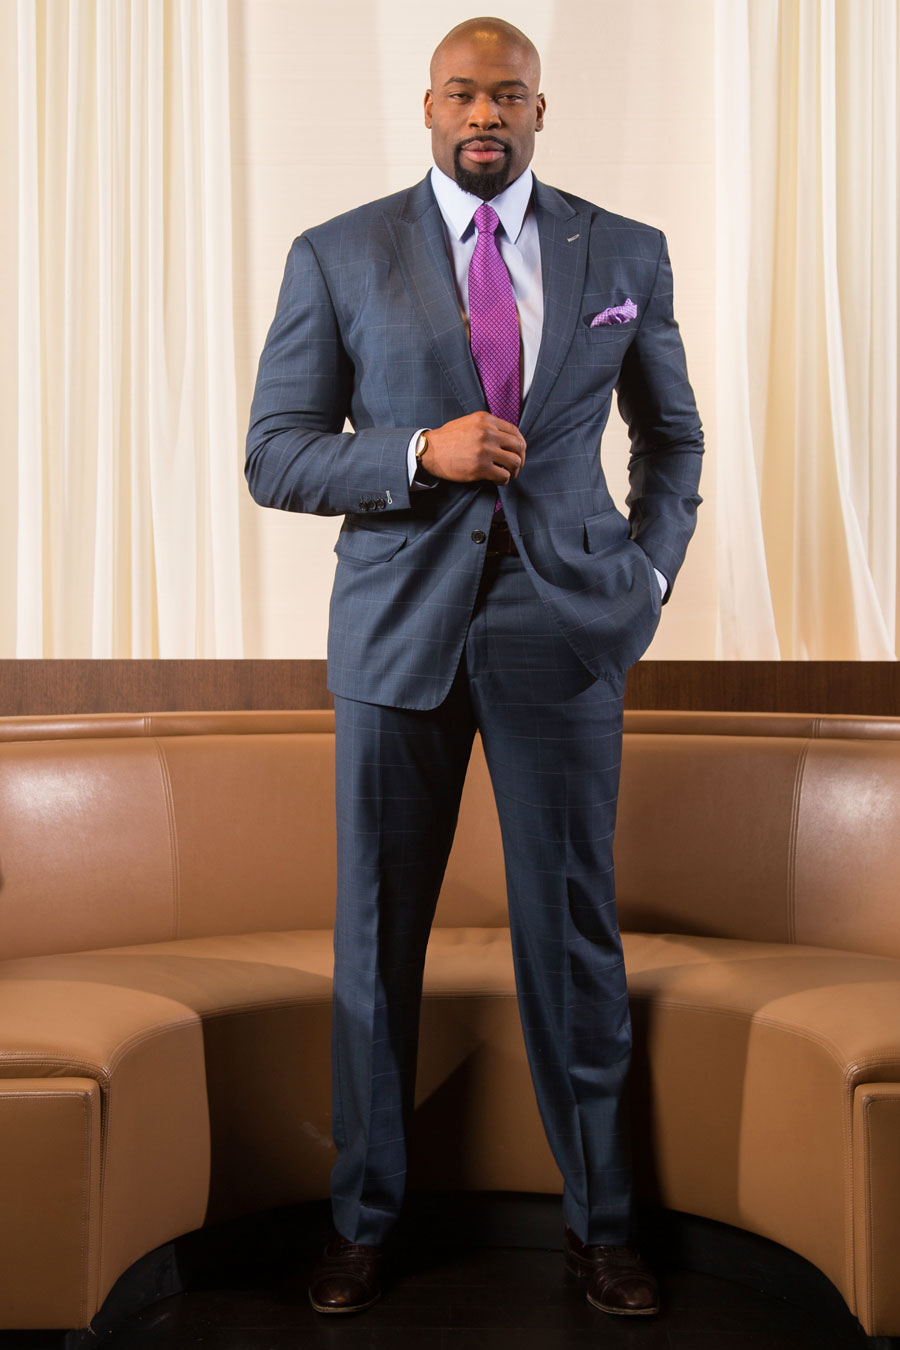 Blue-Slate-Custom-Windowpane-Suit-Slacks-Tailored-By-Balani-Pink-Tie-Purple-Pocket-Square-White-Drapes-Chicago-900.jpg